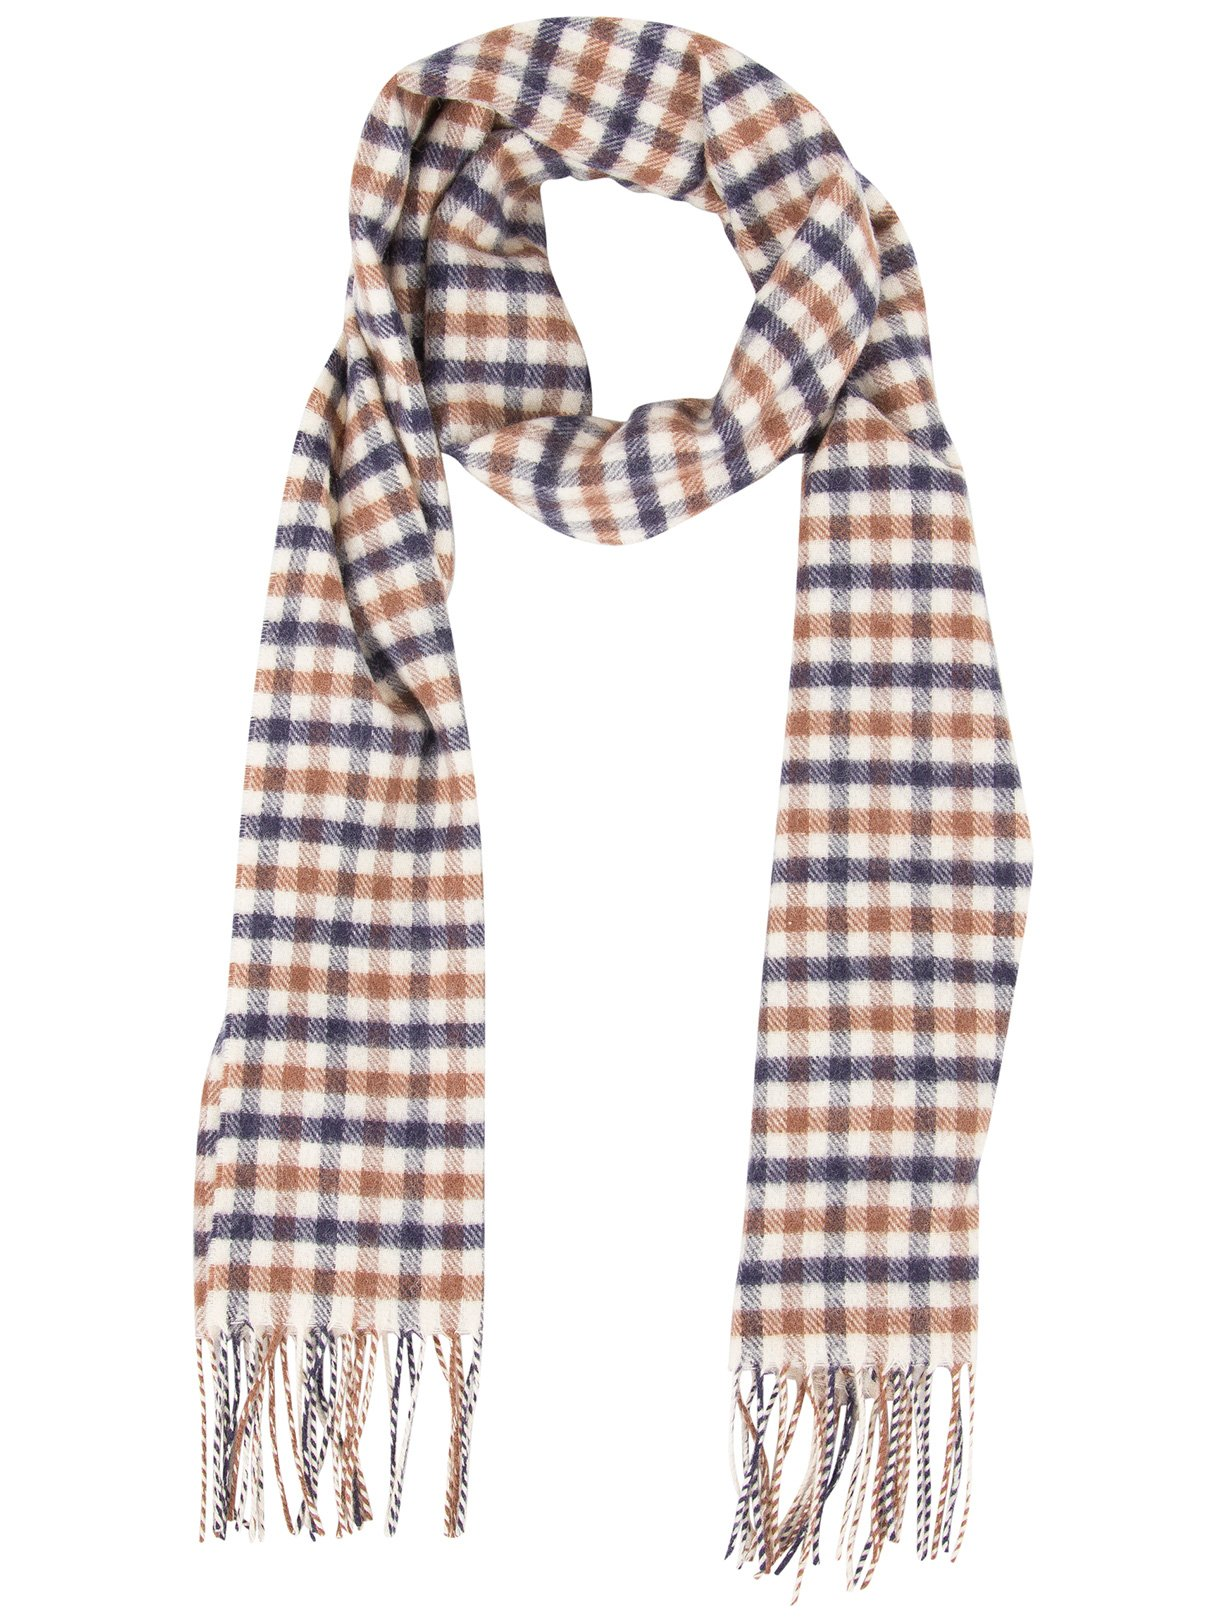 Aquascutum Men's Lambswool CC Checked Scarf, Brown, One Size